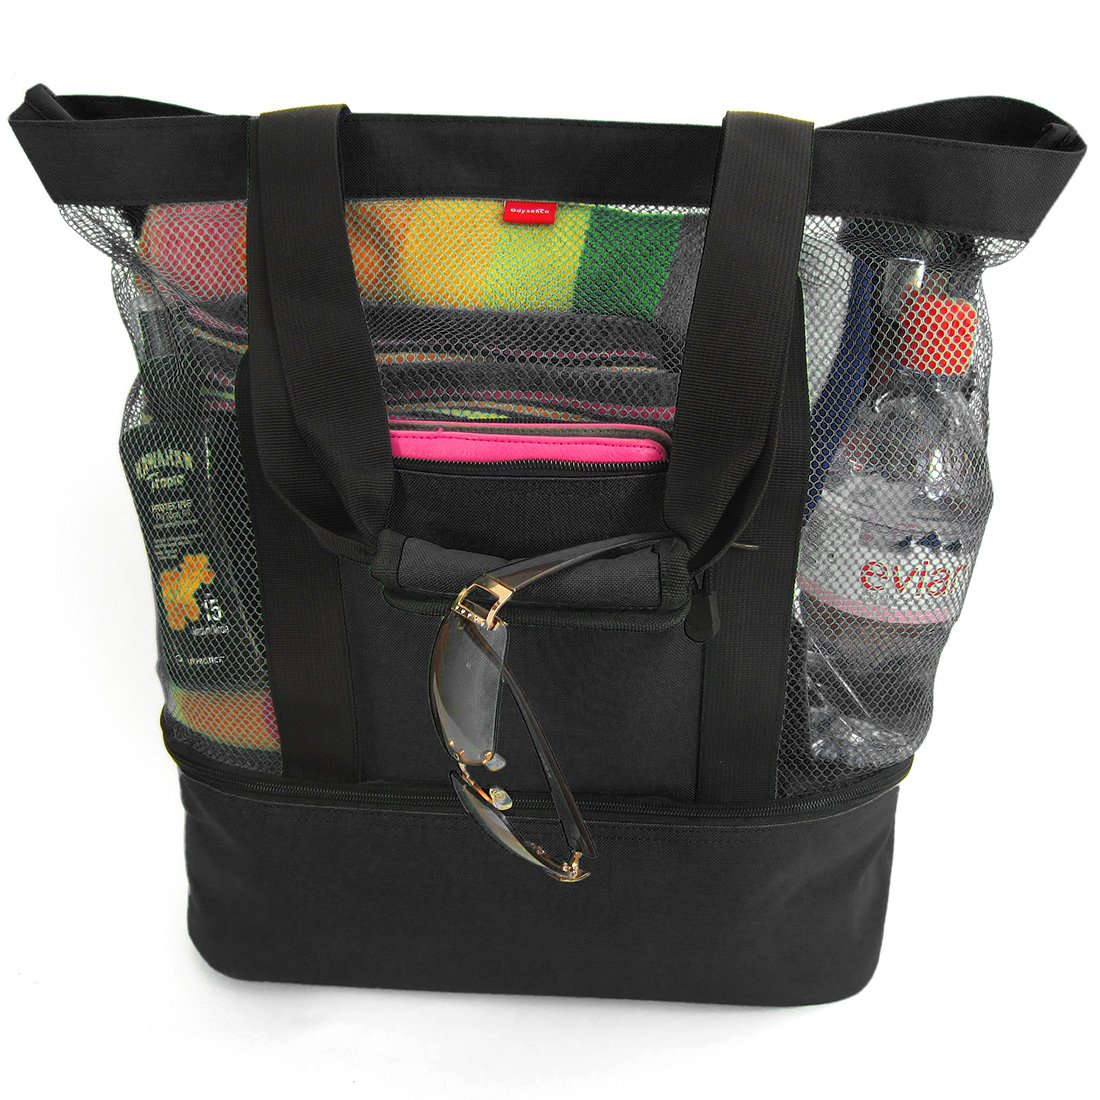 Aruba Mesh Beach Tote Bag with Insulated Picnic Cooler (Black)